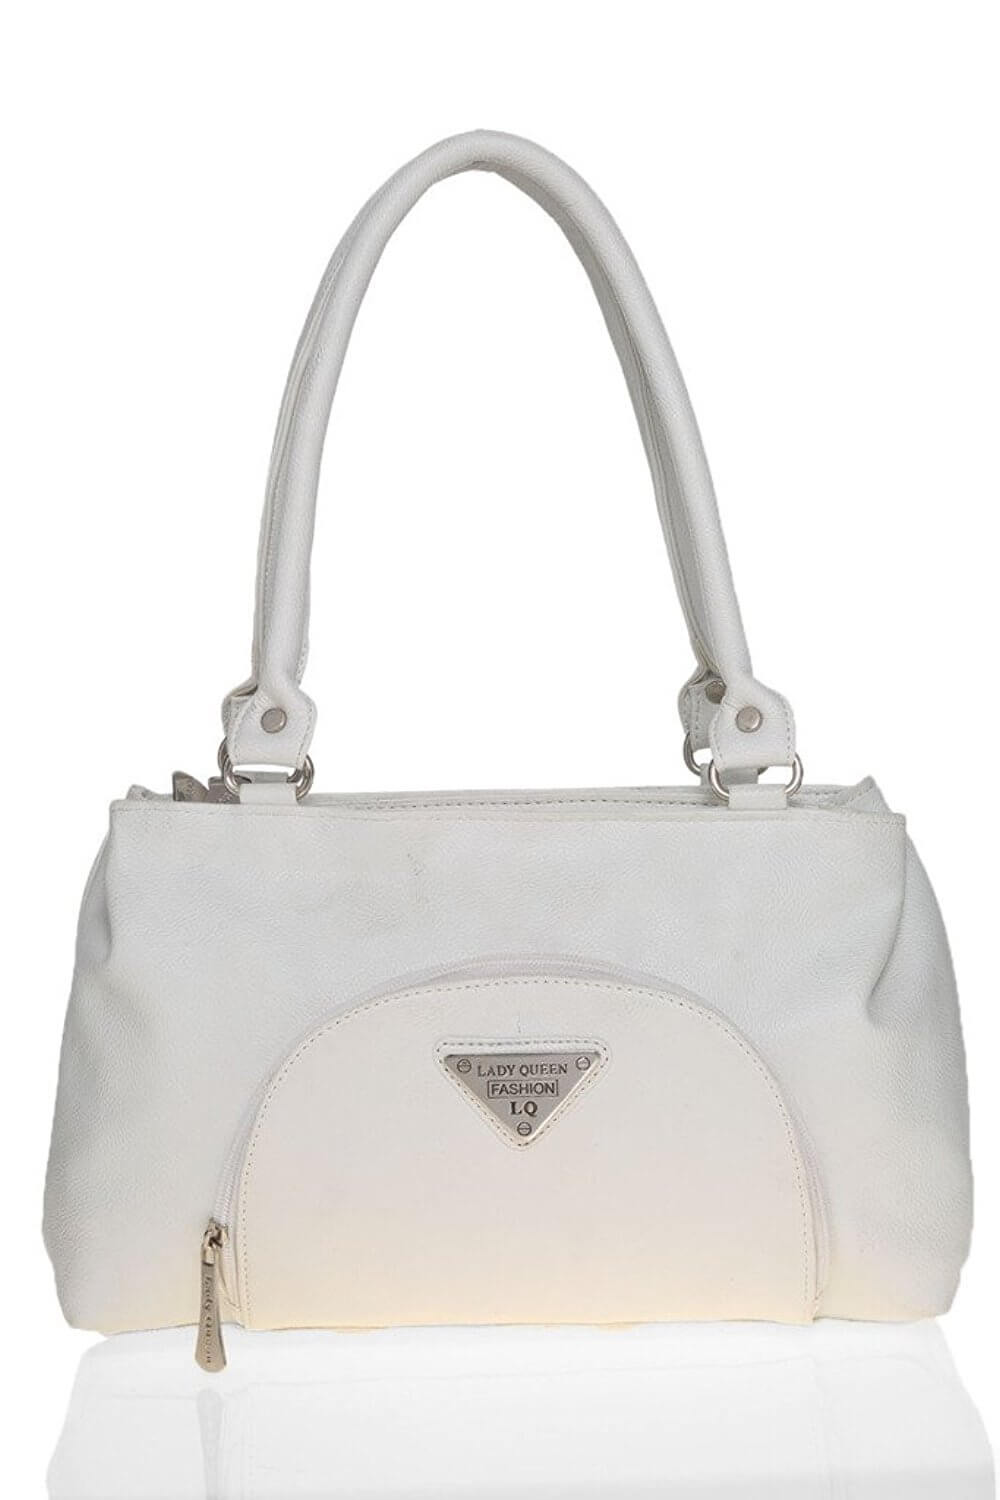 Lady queen casual bag LD - 353